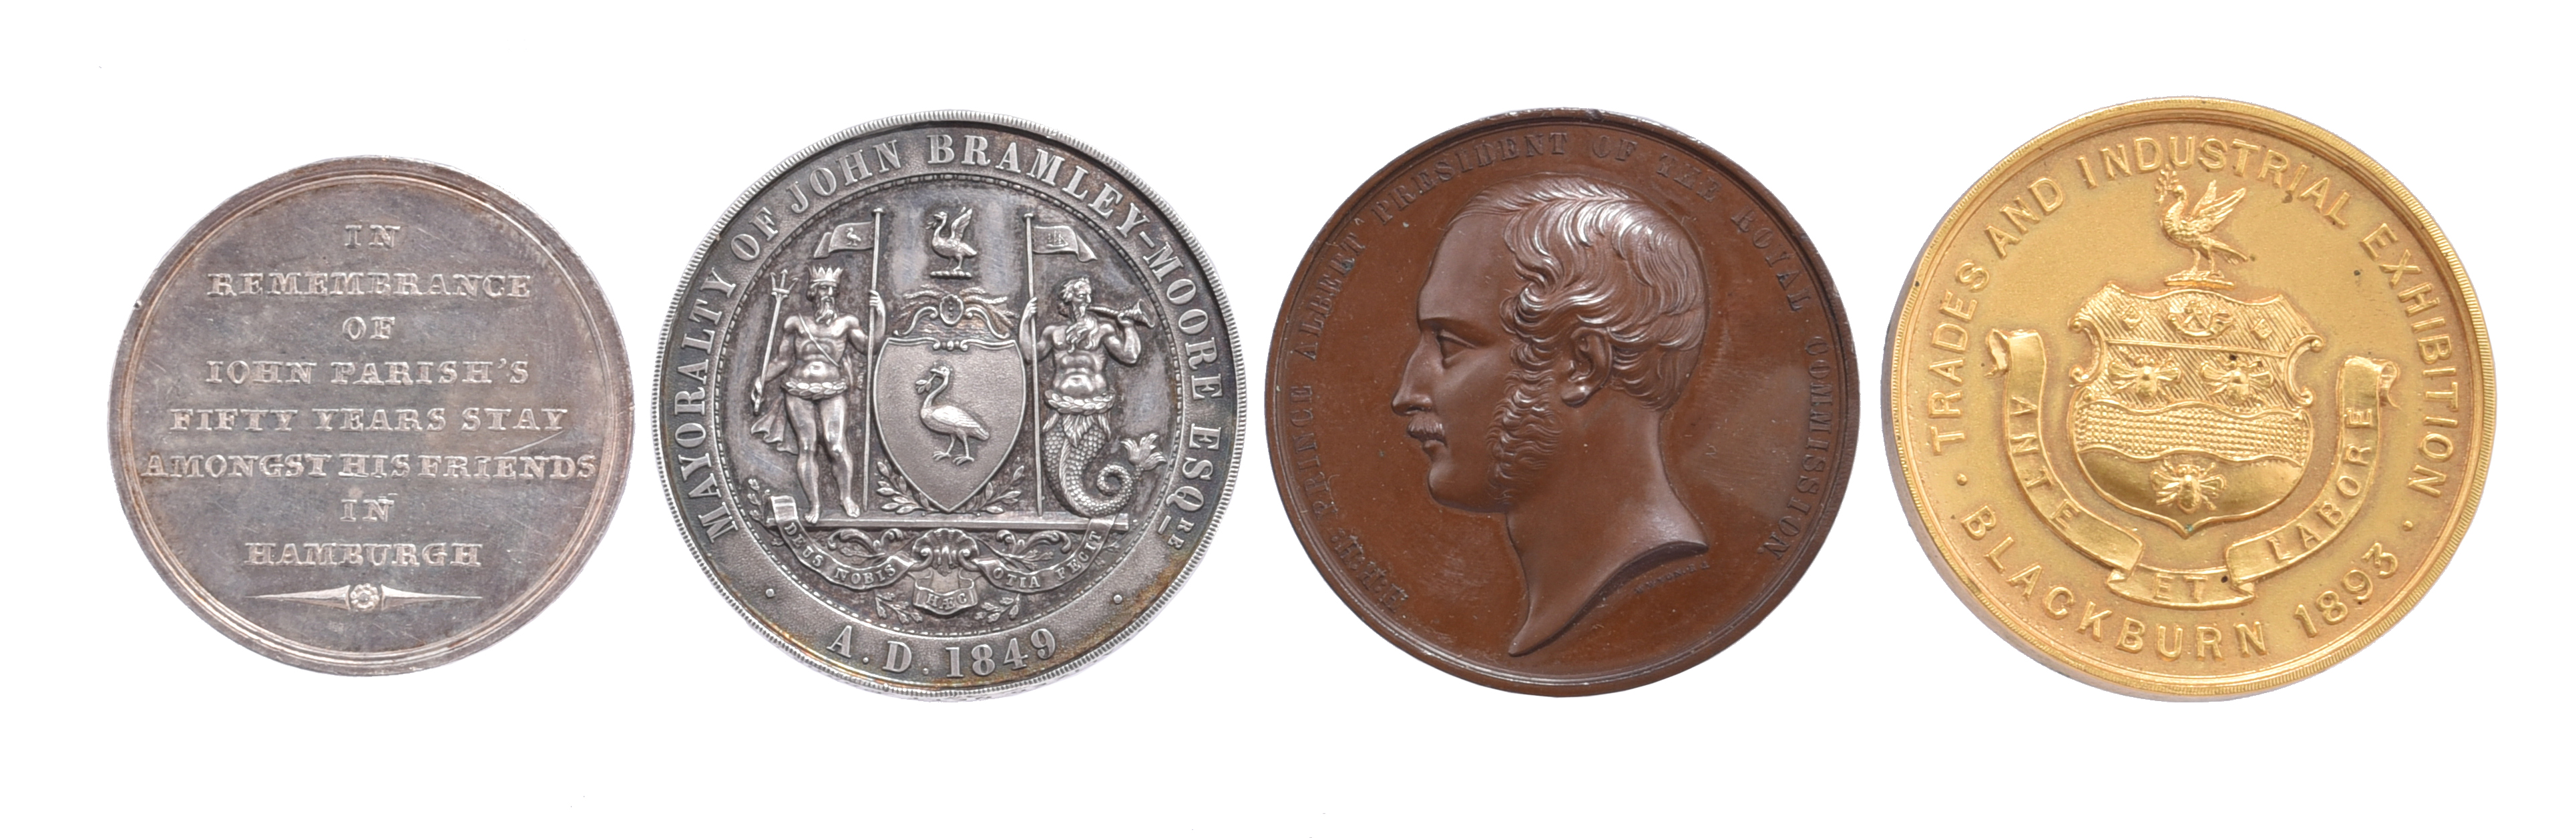 Commerce and Industry: four medals: John Parish, Hamburg 1806, silver, 39mm, 'FROM 1756 TILL 1806 TO